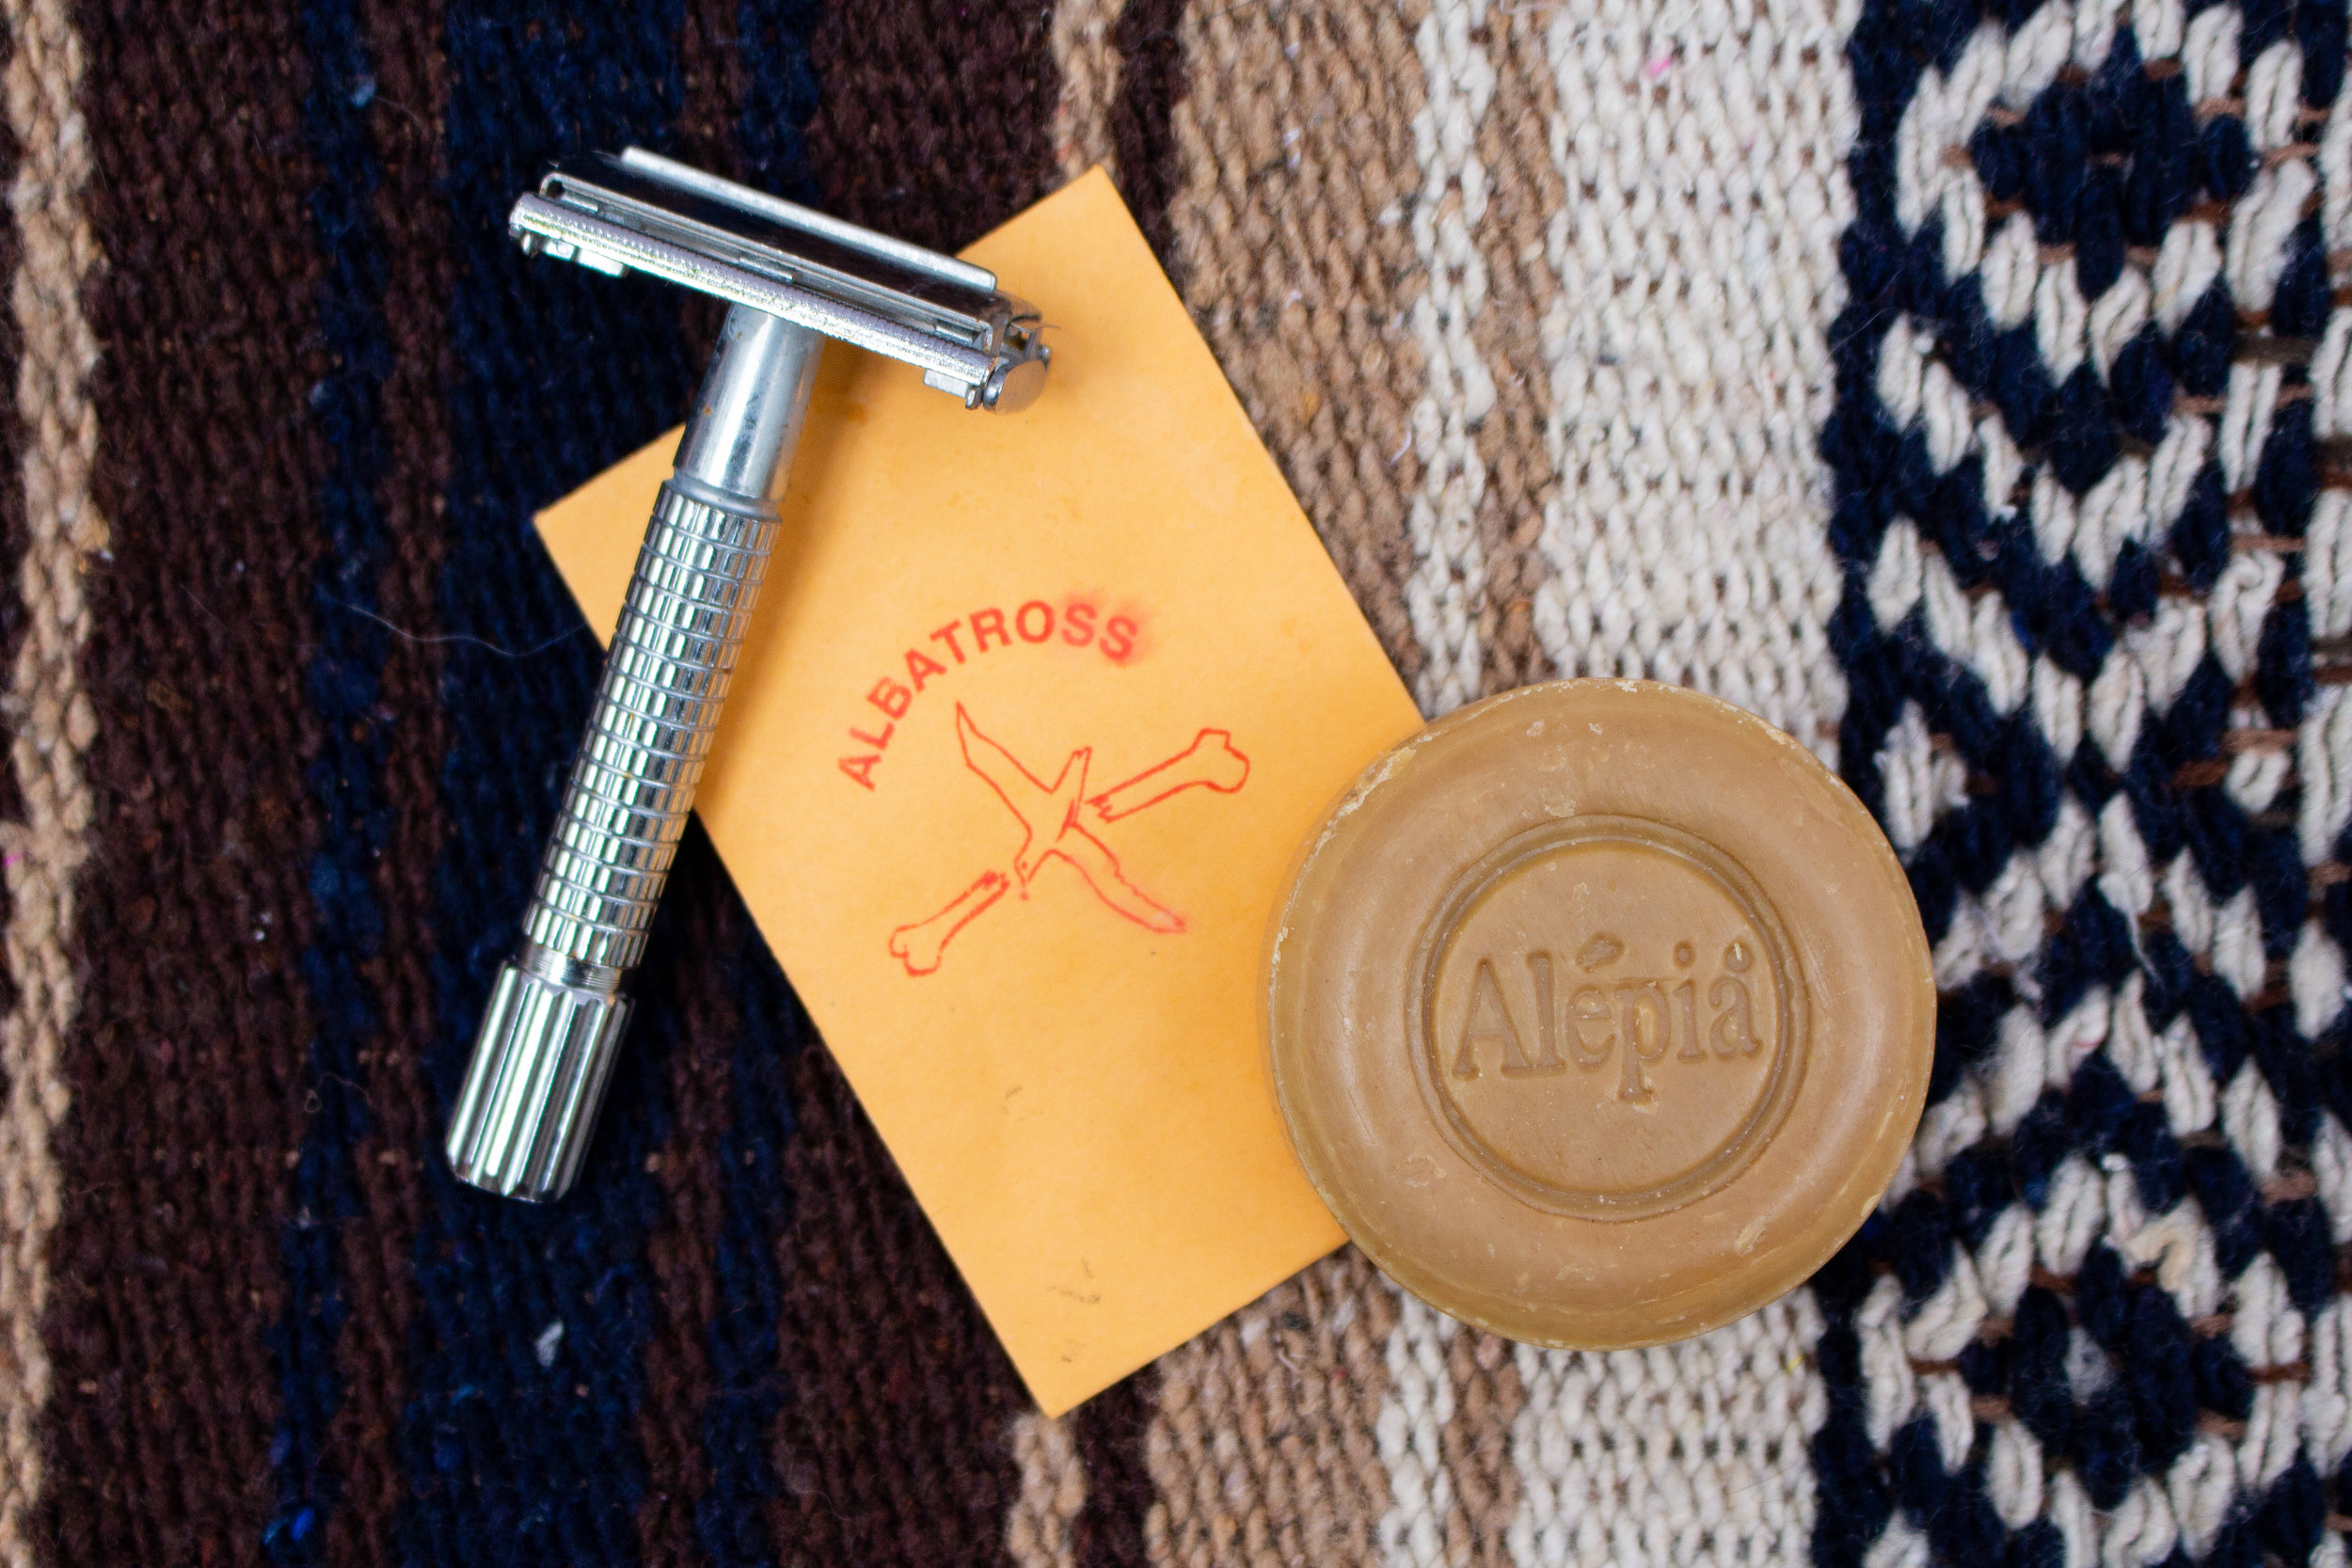 embrace a razor that works - Say good bye to the days of plastic razors and crappy shaves. Embrace a reusable razor! This stainless steel one from Albatross is my favorite but find what works for you!